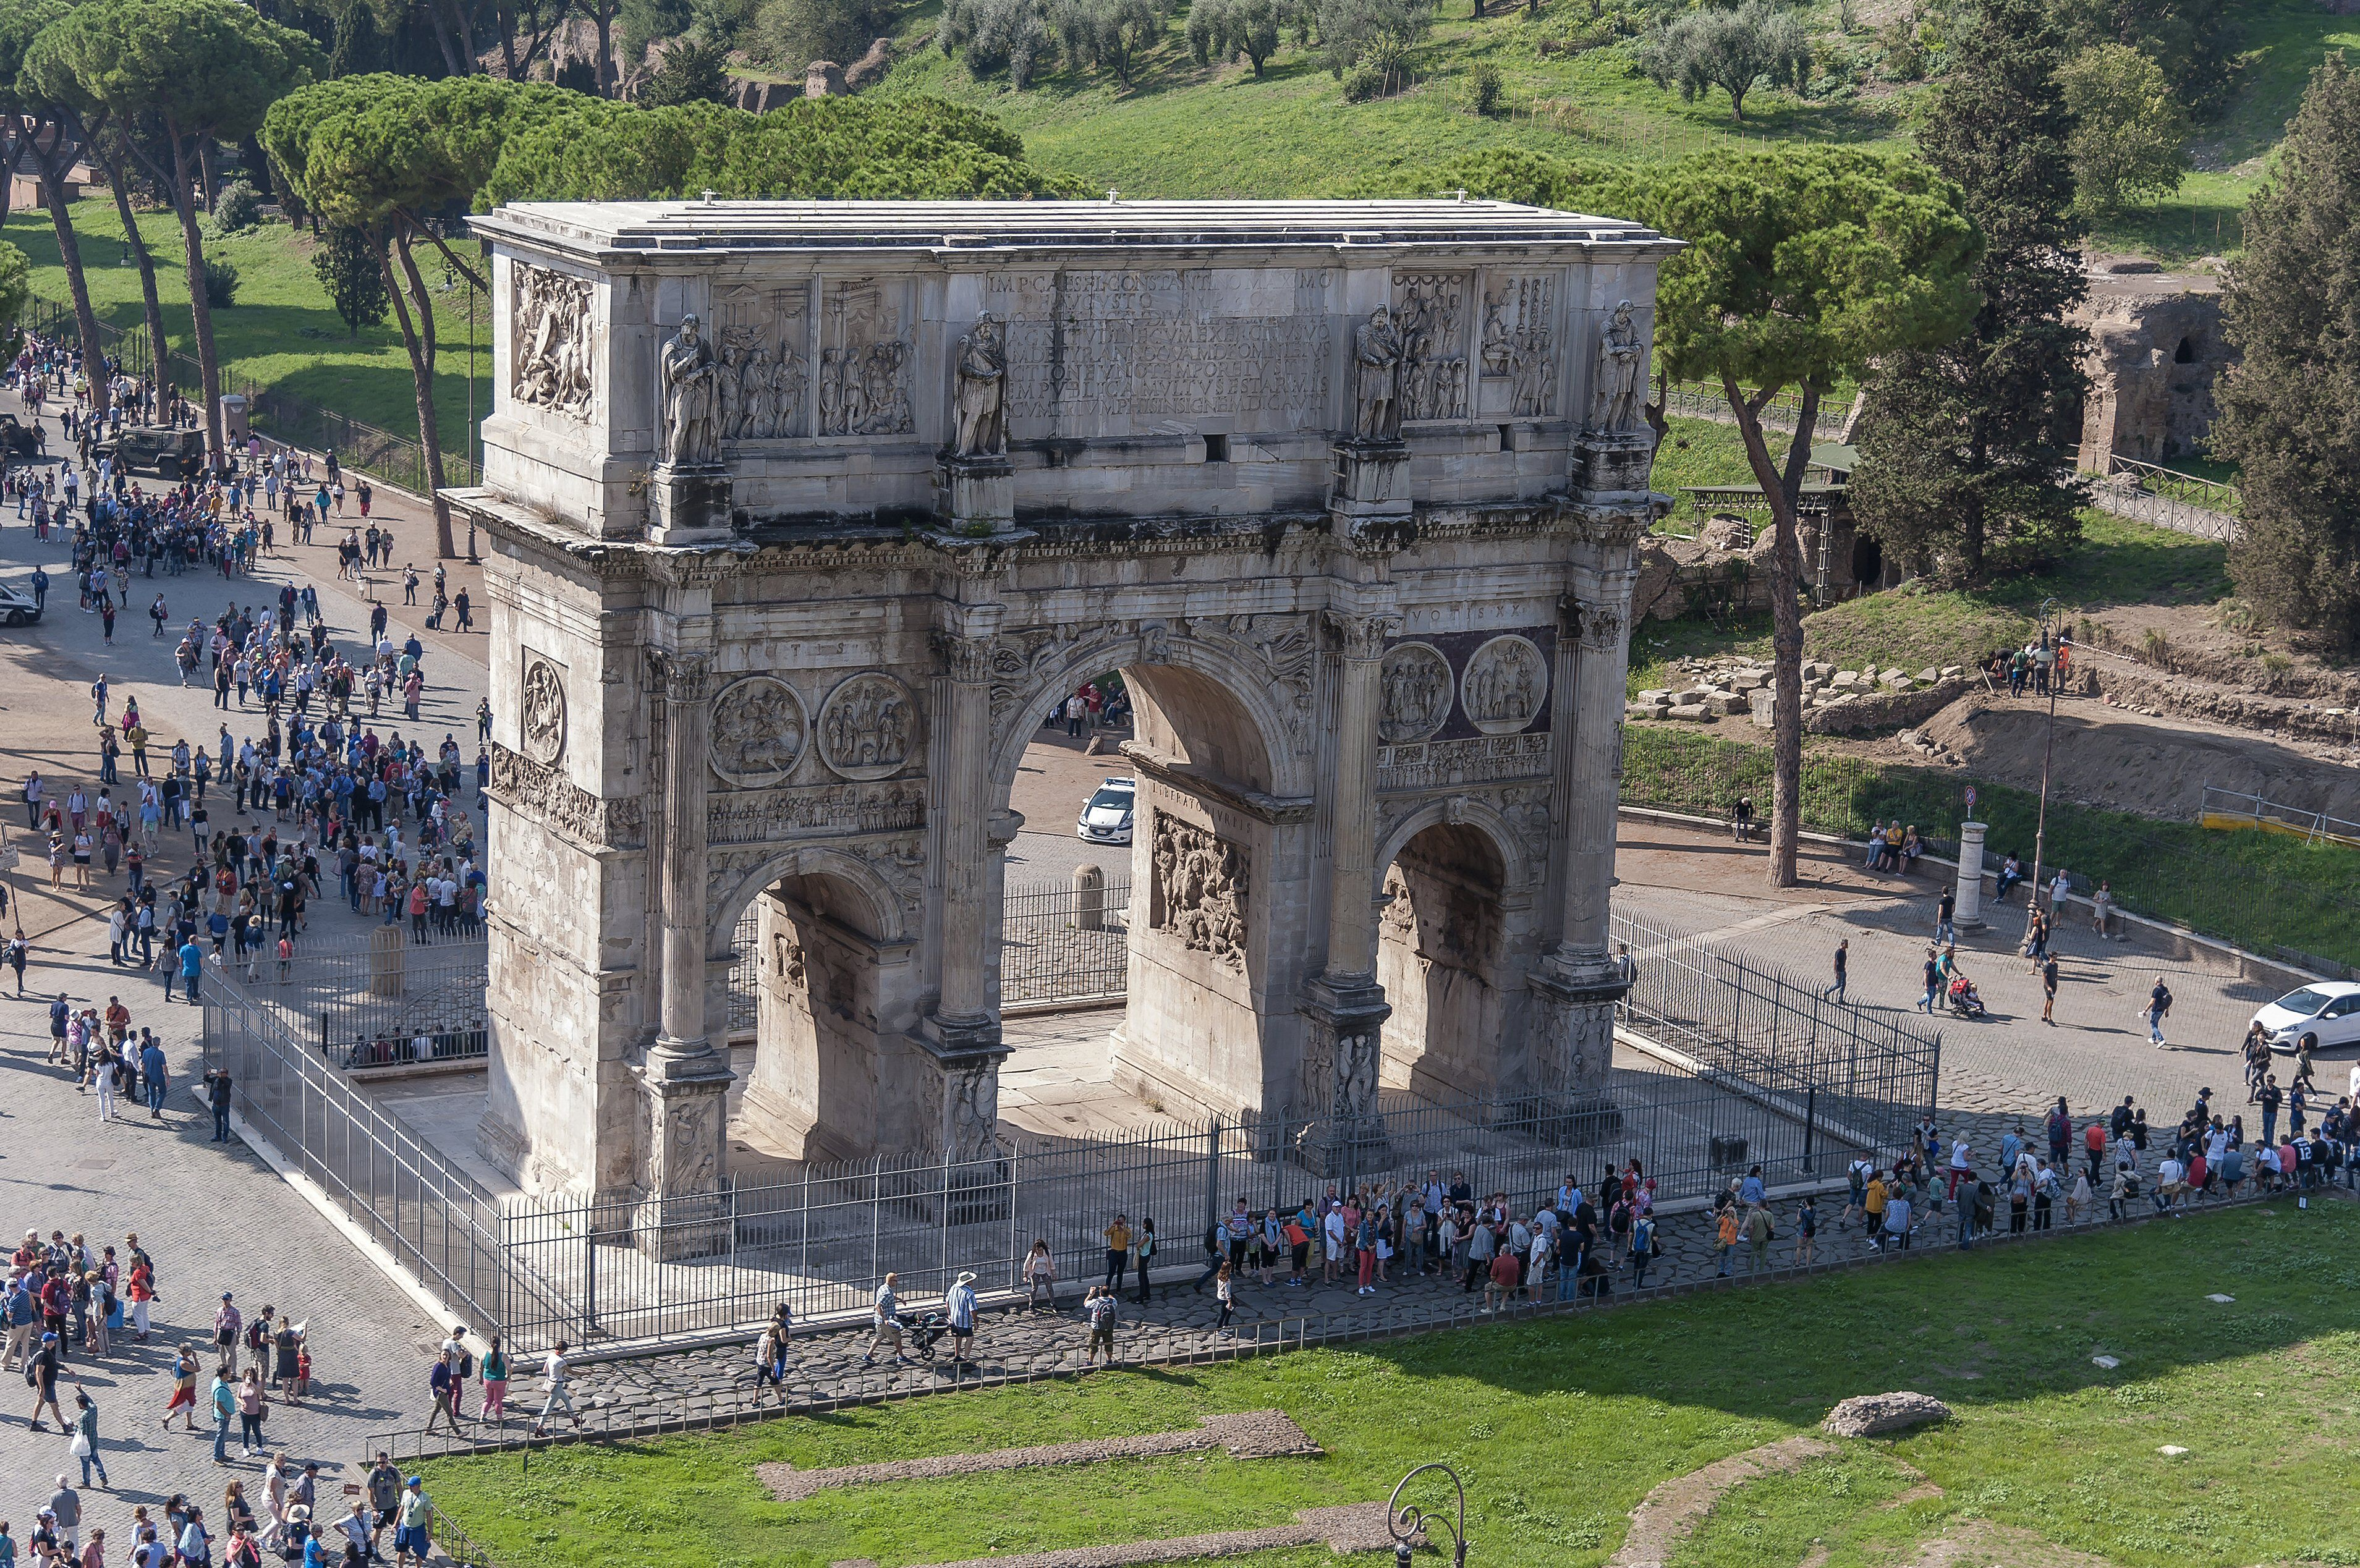 Overview taken from the top of the Colosseum shows the Arch of Constantine on October 3, 2017 in Rome, Italy.